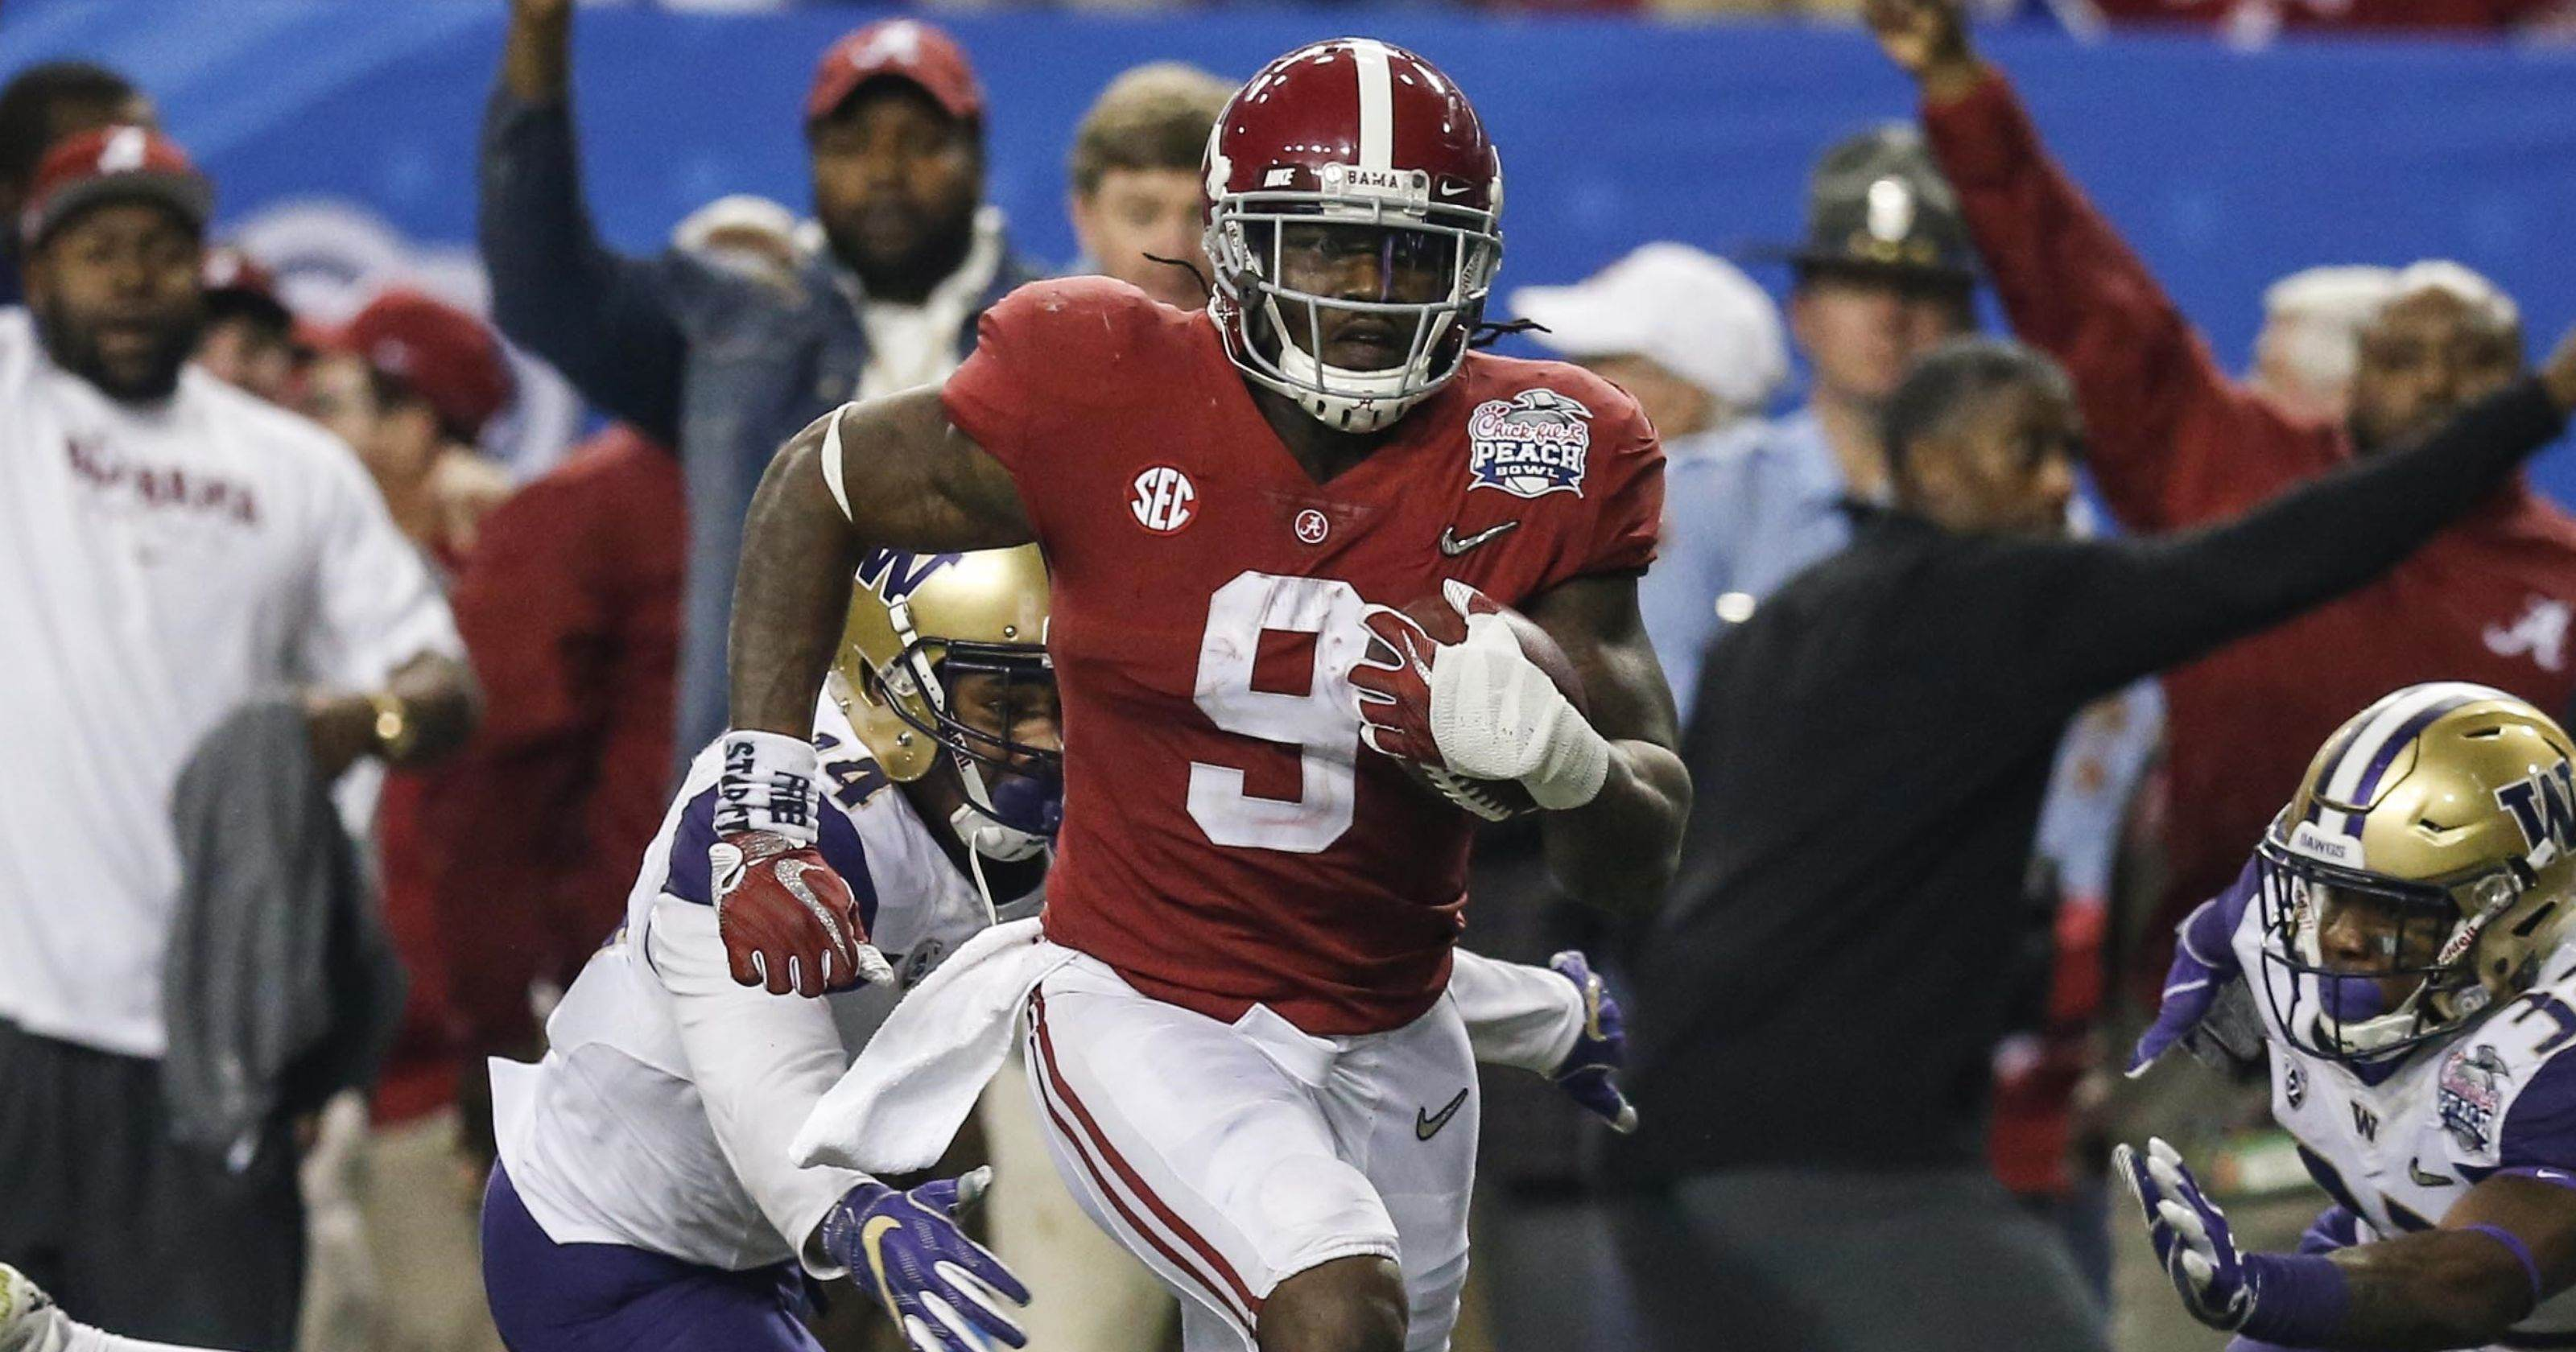 Cowboys Draft RB Bo Scarbrough with the 236th Pick in the 2018 NFL Draft